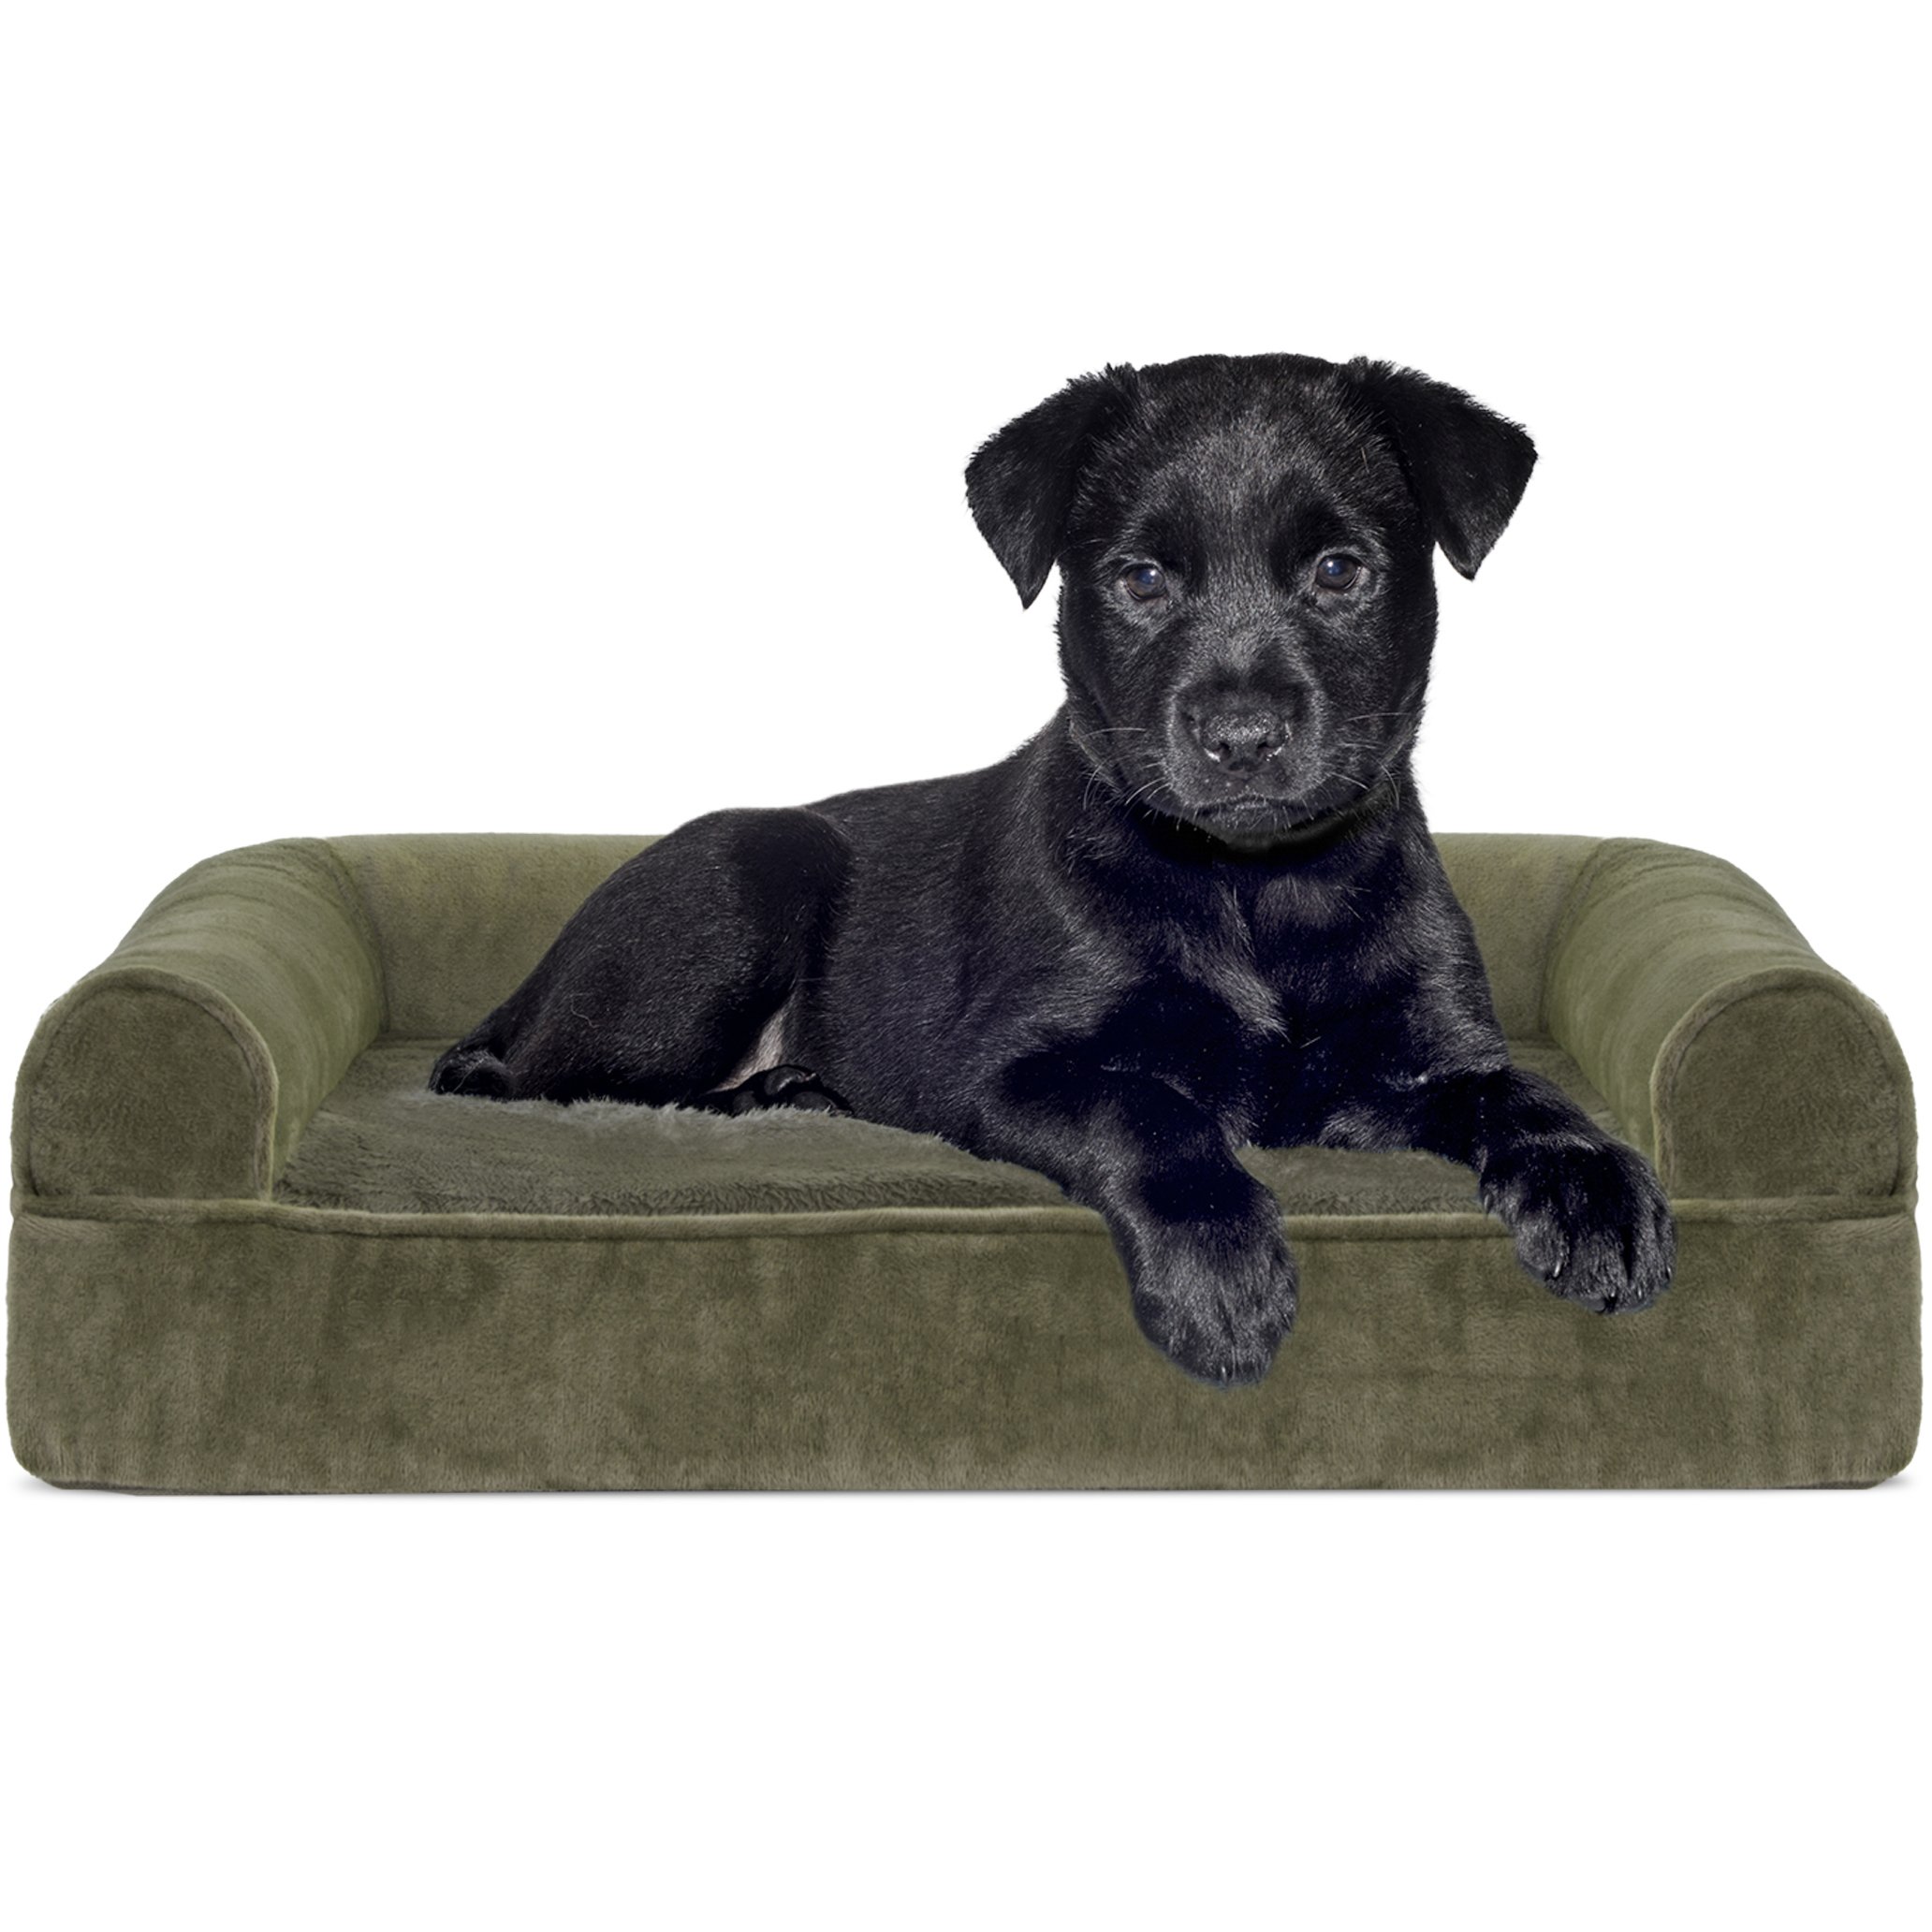 FurHaven Pet Dog Bed | Orthopedic Faux Fur & Velvet Sofa-Style Couch Pet Bed for Dogs & Cats, Dark Sage, Small